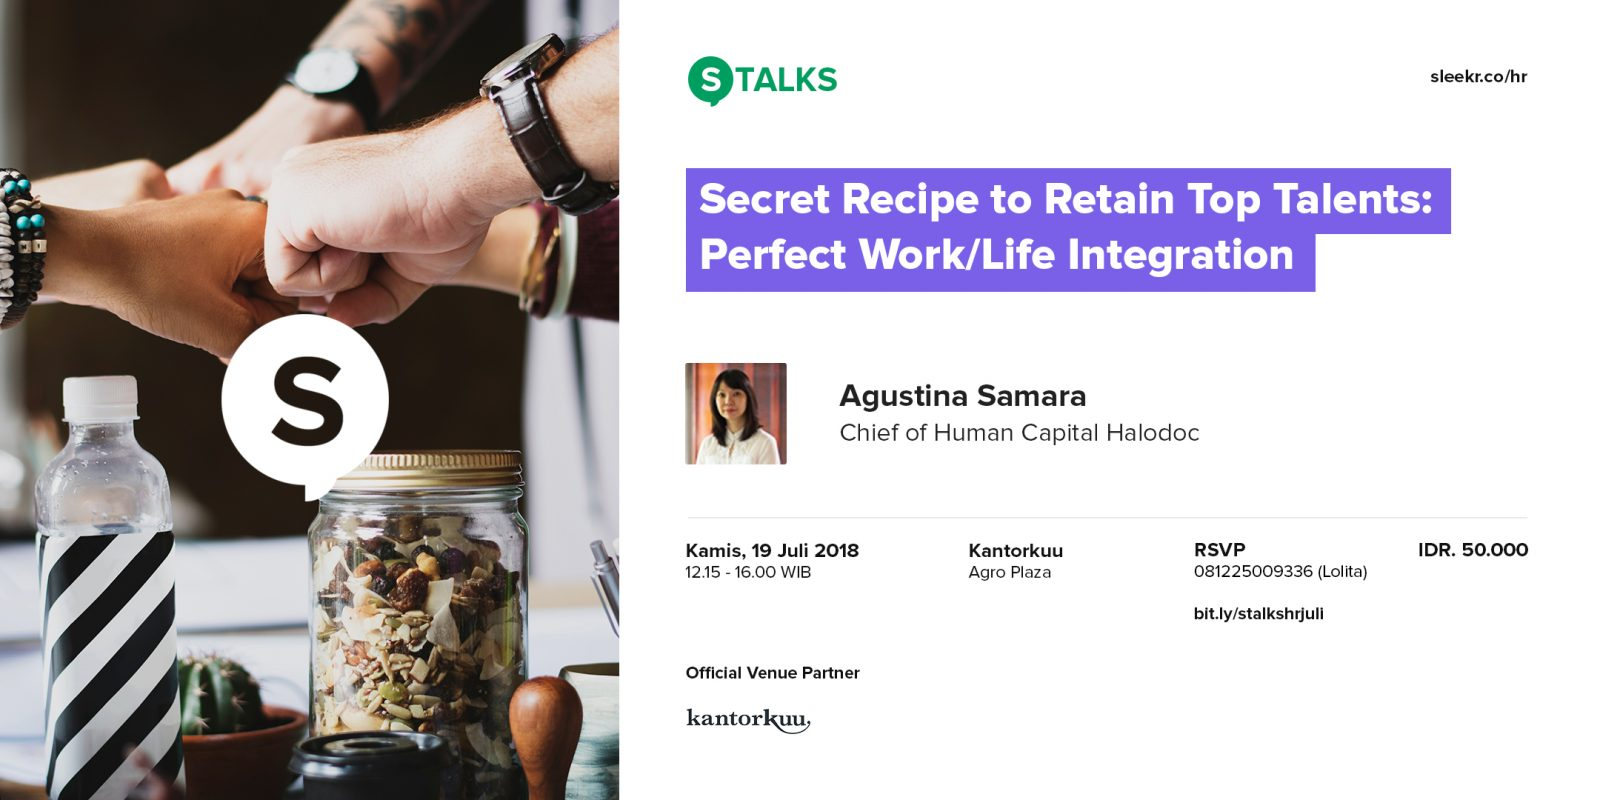 S-TALKS Secret Recipe to Retain Top Talents: Perfect Work/Life Integration